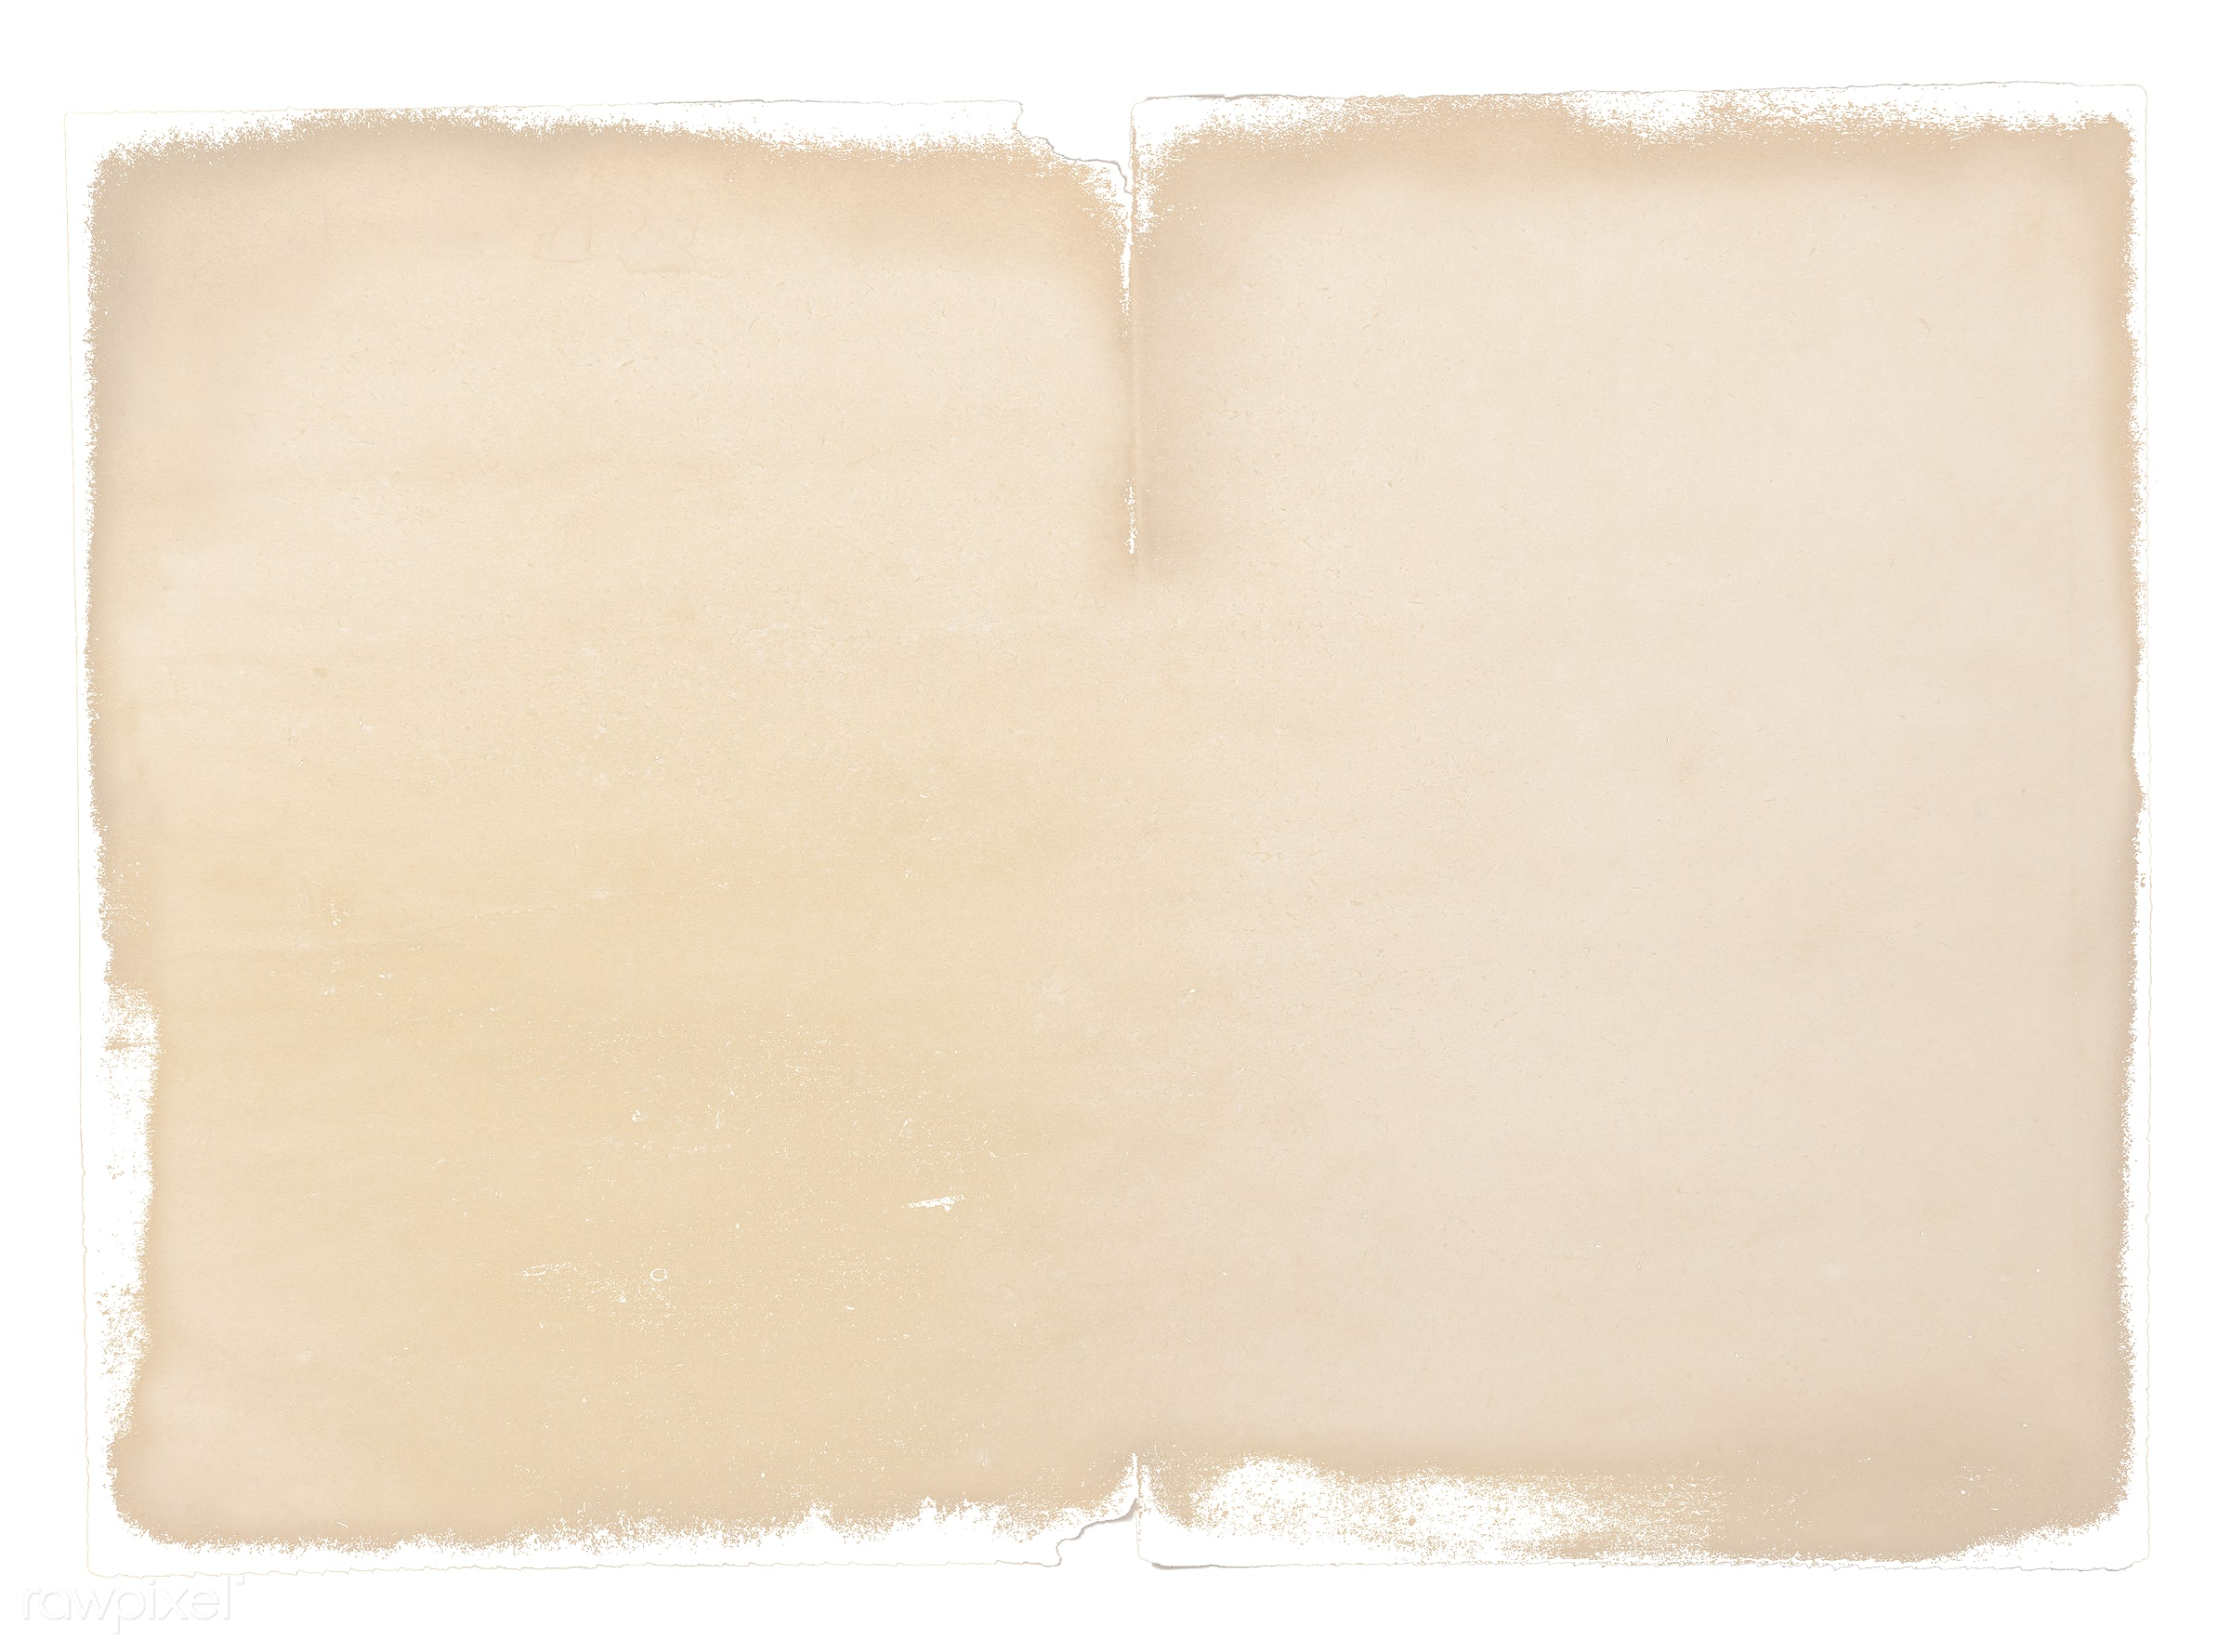 concrete, mockup, background, blank, brown, copy space, empty, interior, mock up, painted, structure, texture, wall,...